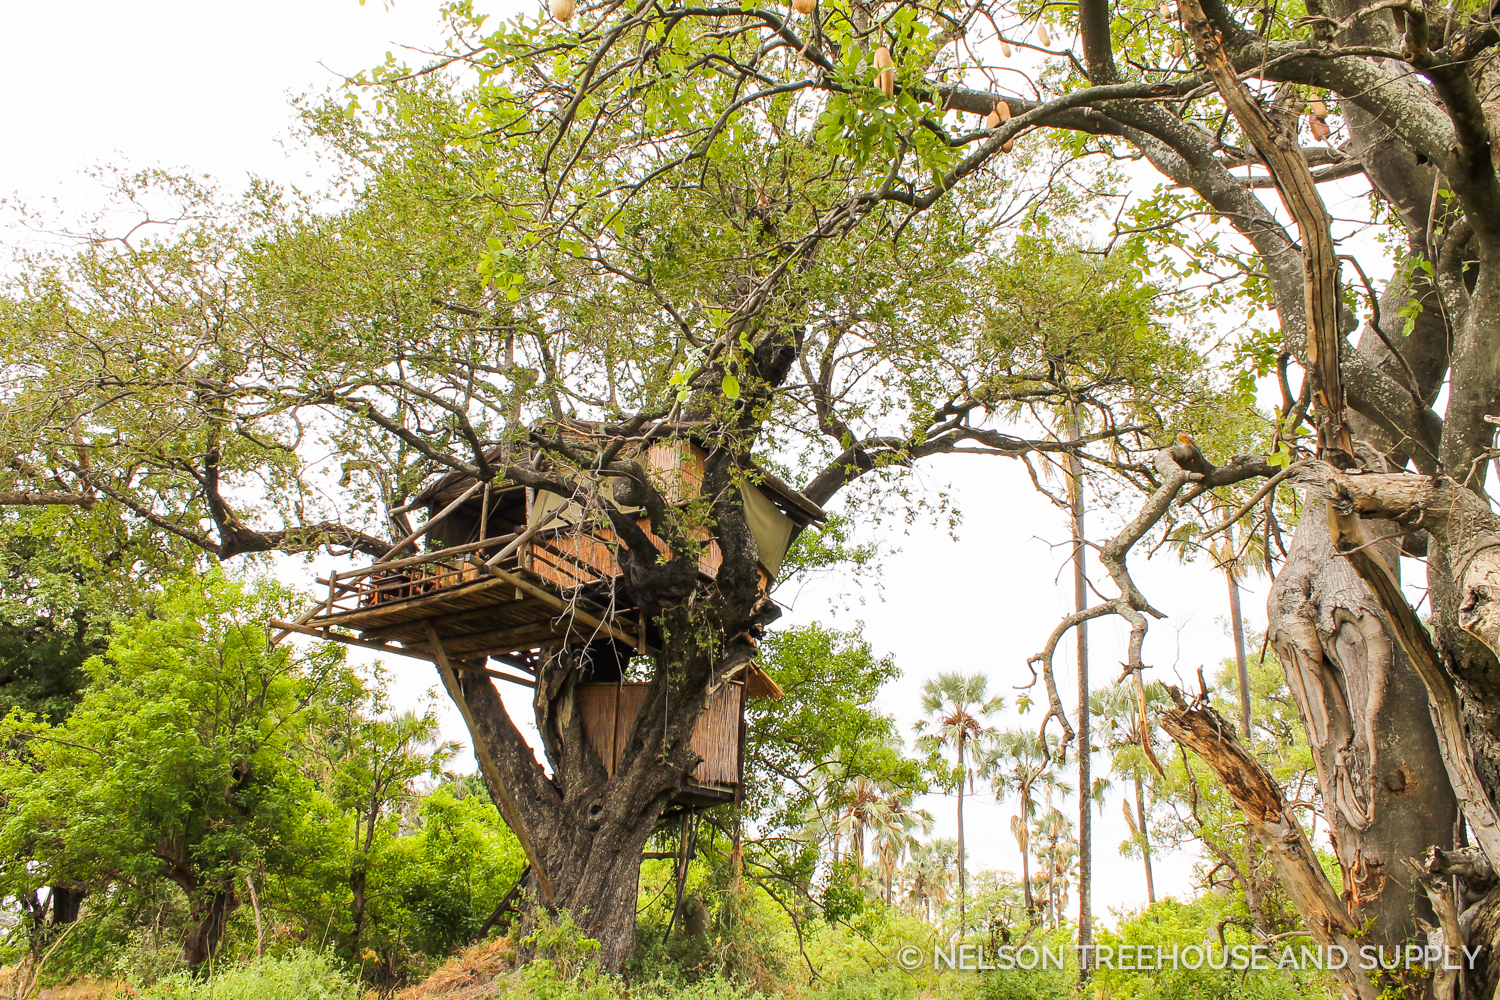 Odd ball Camp treehouse in Botswana.Photo by Dylan Rauch.